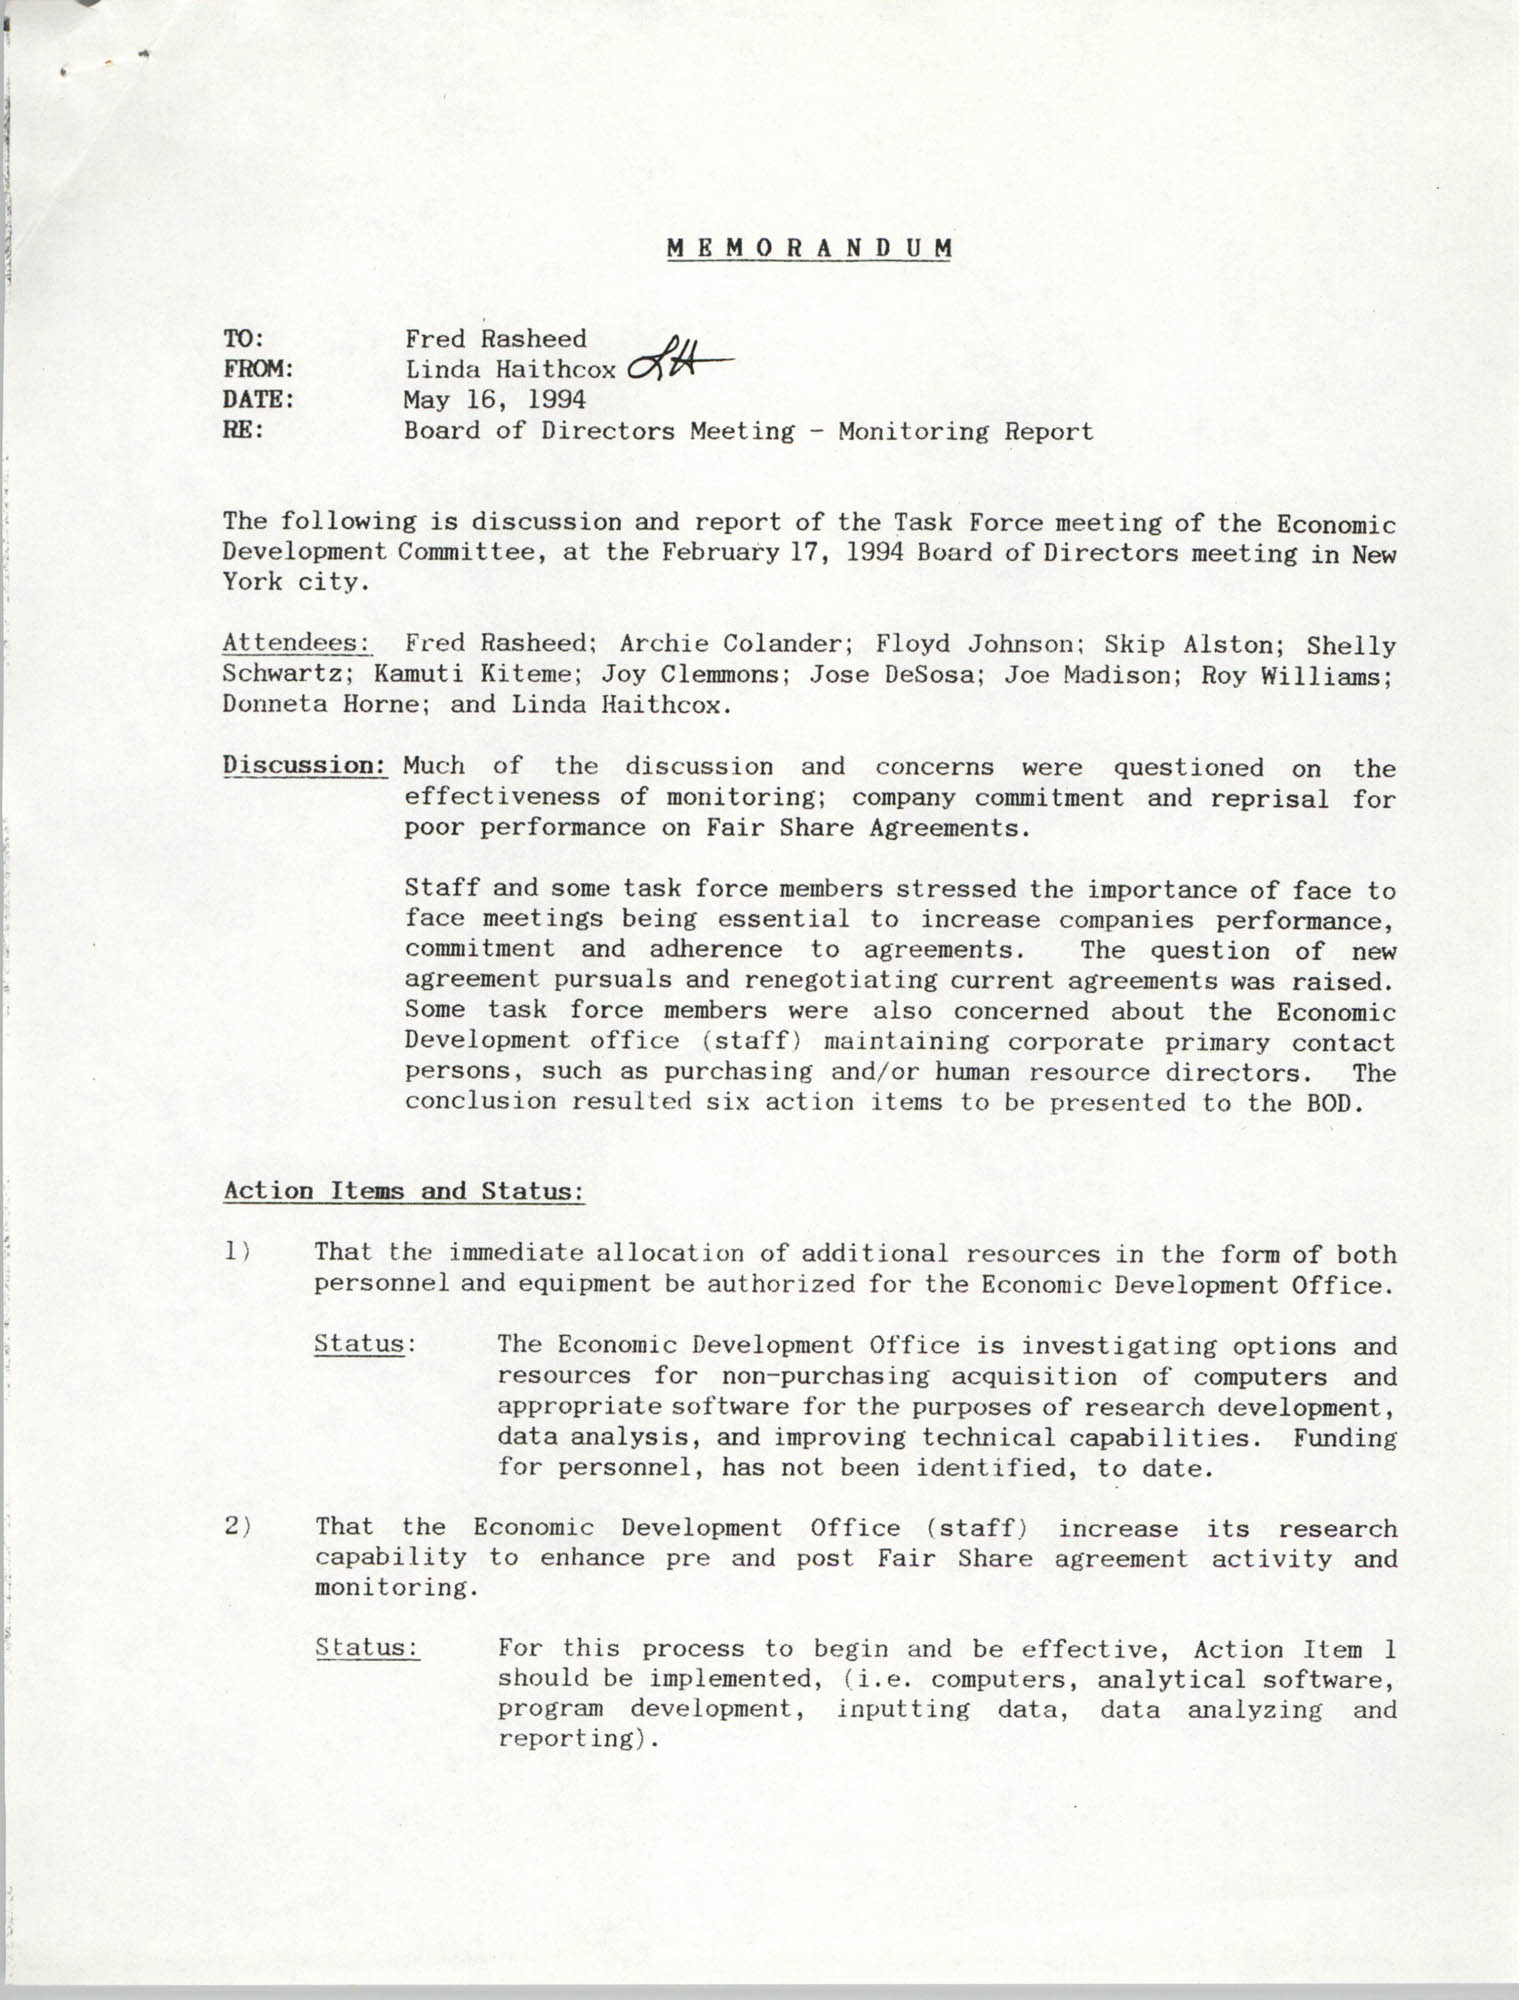 Economic Development Committee Memorandum, May 16, 1994